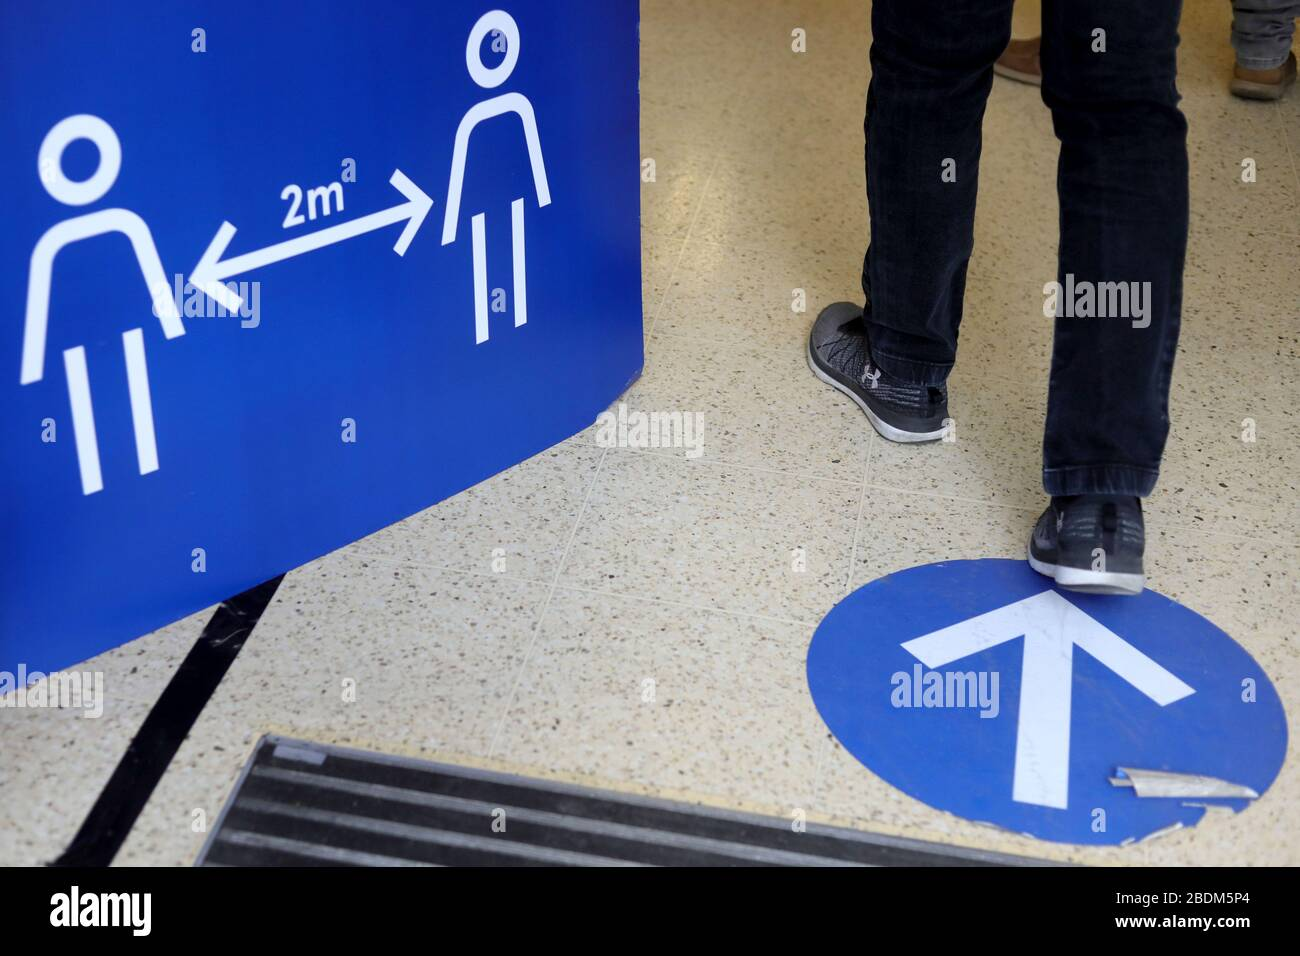 London, UK. 8th Apr, 2020. Photo taken on April 8, 2020 shows signs at a Tesco's store to encourage social distancing in London, Britain. As of Wednesday morning, the number of confirmed cases of COVID-19 in Britain hit 60,733, up 5,492 in the past 24 hours, said the Department of Health and Social Care. Credit: Tim Ireland/Xinhua/Alamy Live News Stock Photo